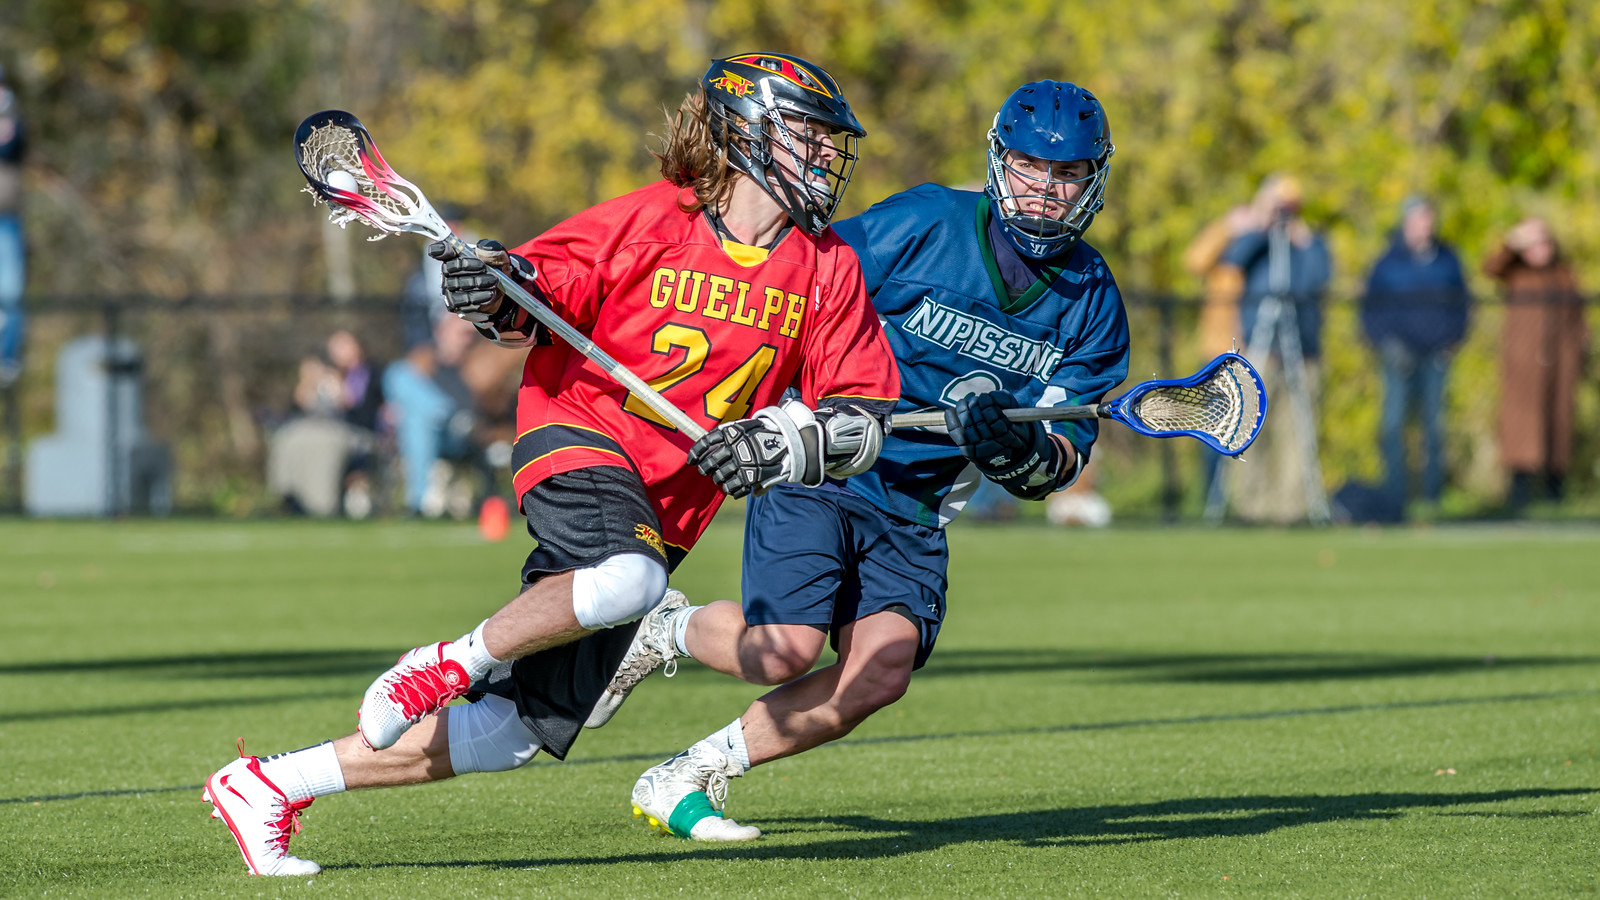 two men's lacrosse players